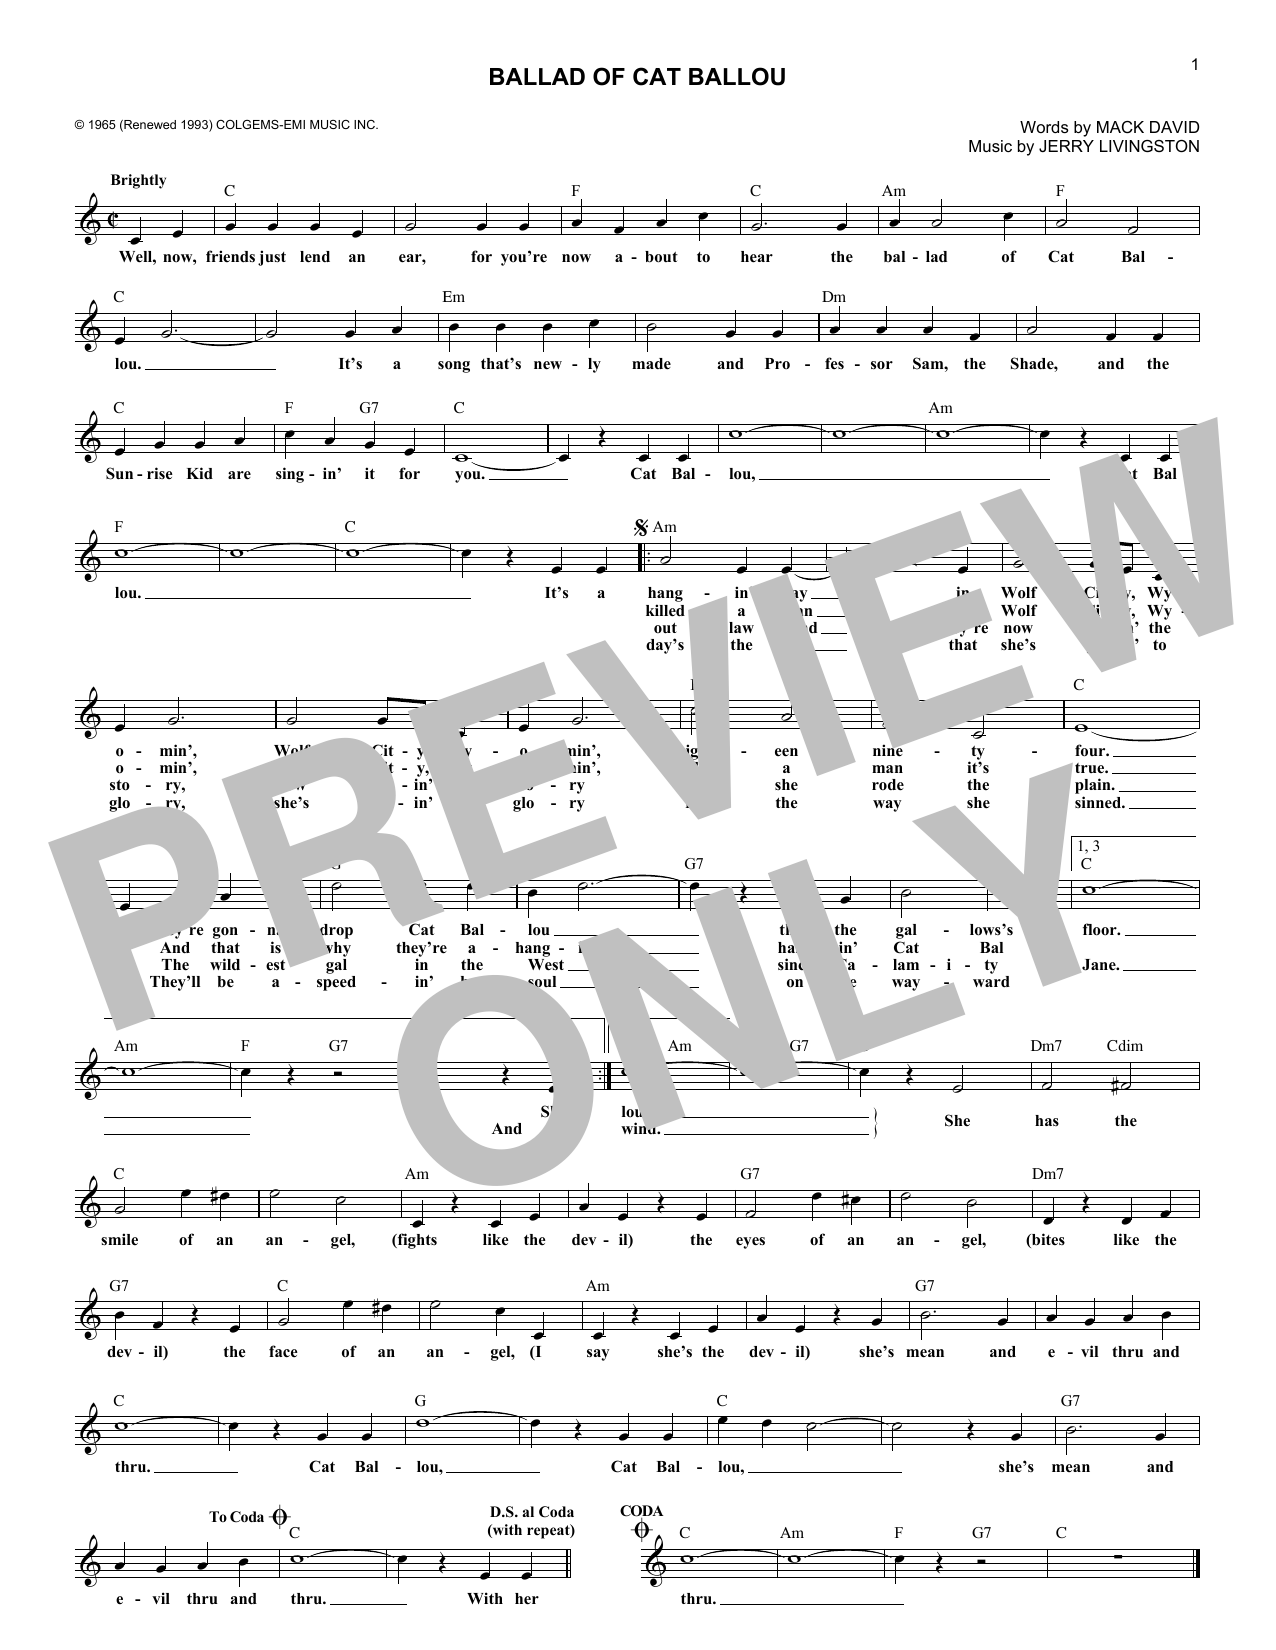 Jerry Livingston 'Ballad of Cat Ballou' Sheet Music Notes